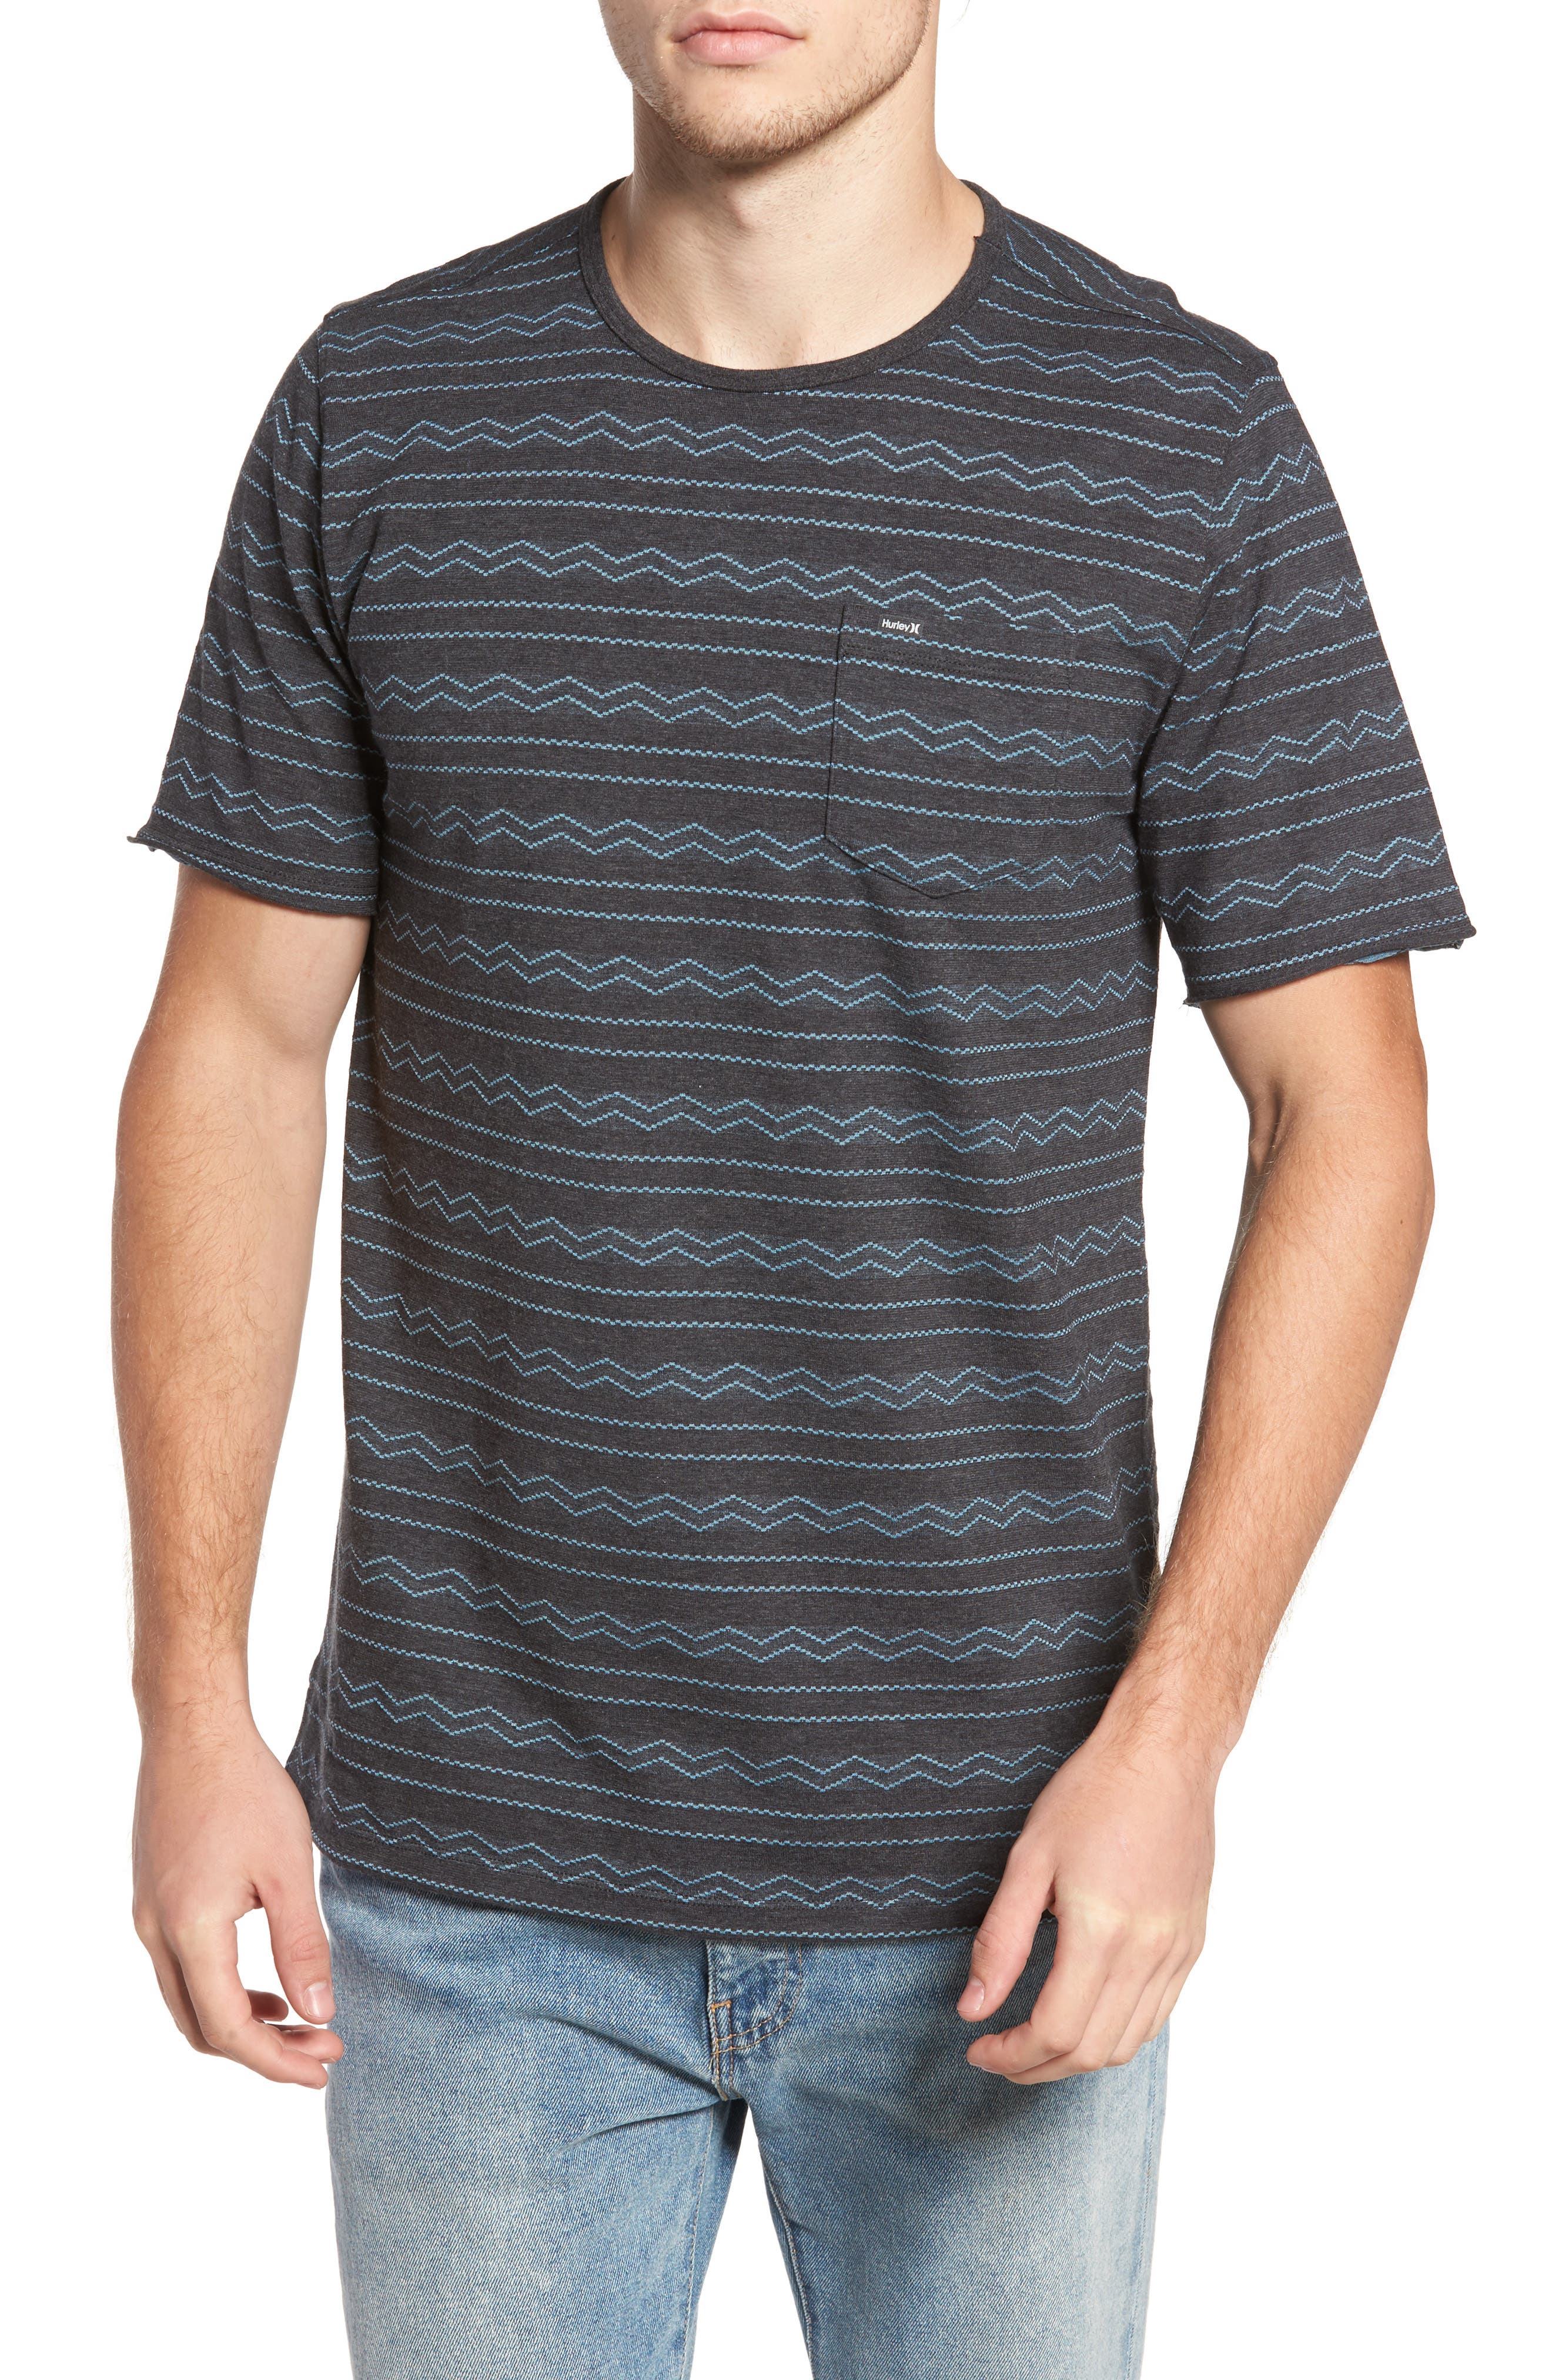 Pismo Dri-FIT T-Shirt,                         Main,                         color, Black Heather